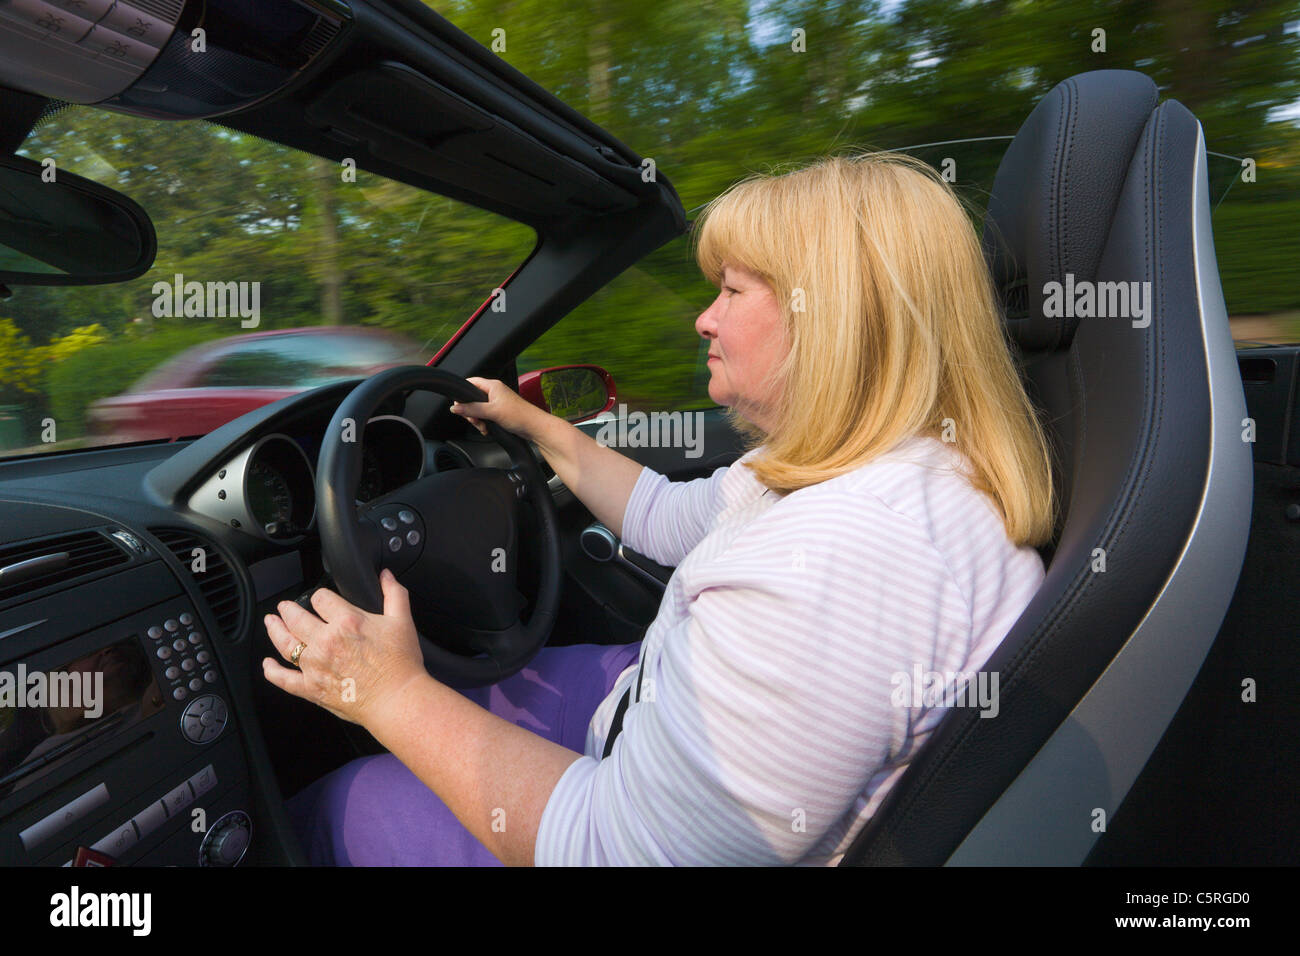 Woman driving a convertible, open top, Mercedes sports car - Stock Image